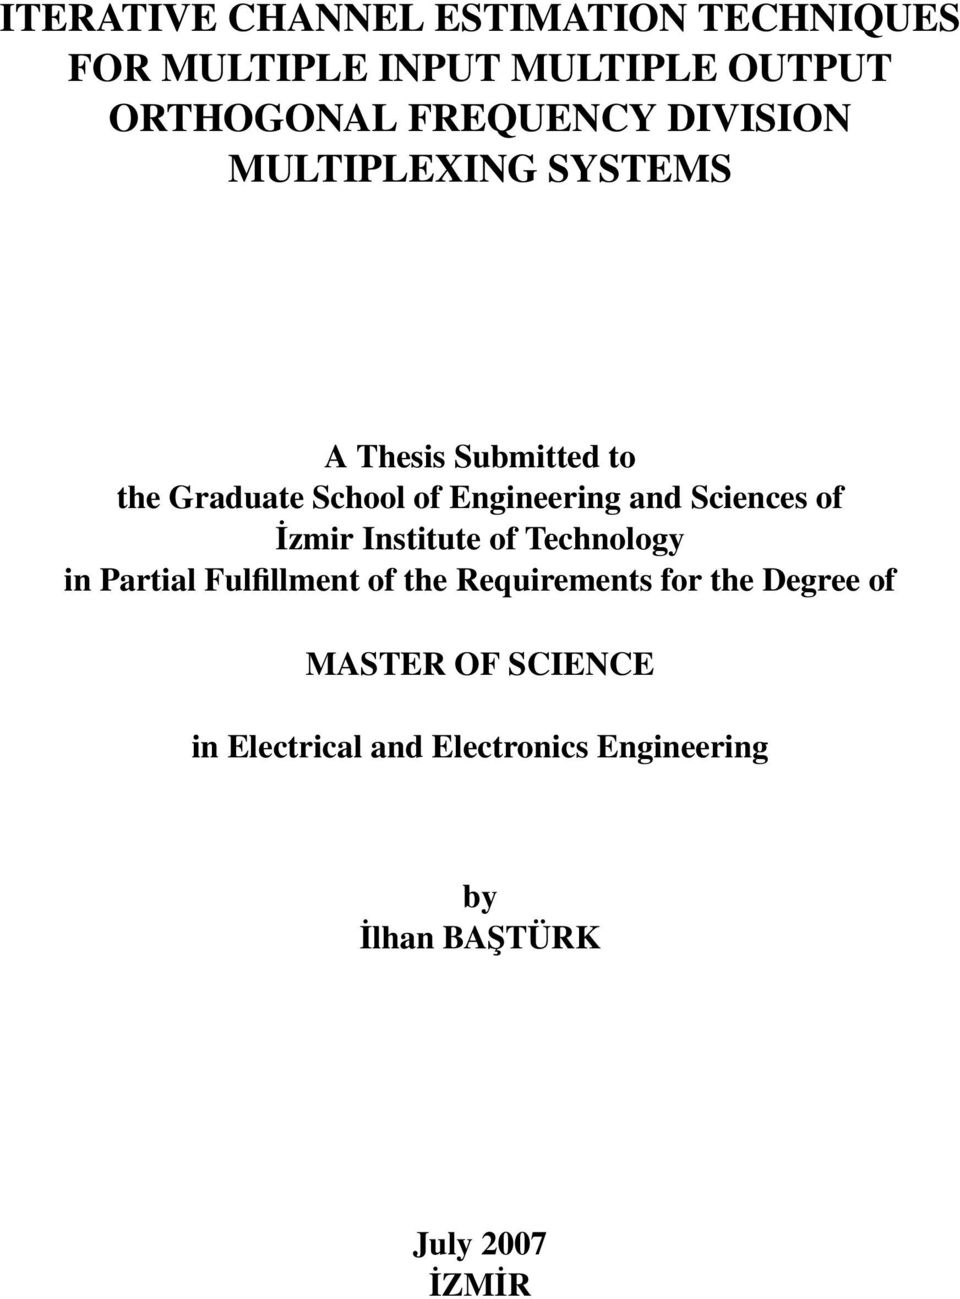 Sciences of İzmir Institute of Technology in Partial Fulfillment of the Requirements for the